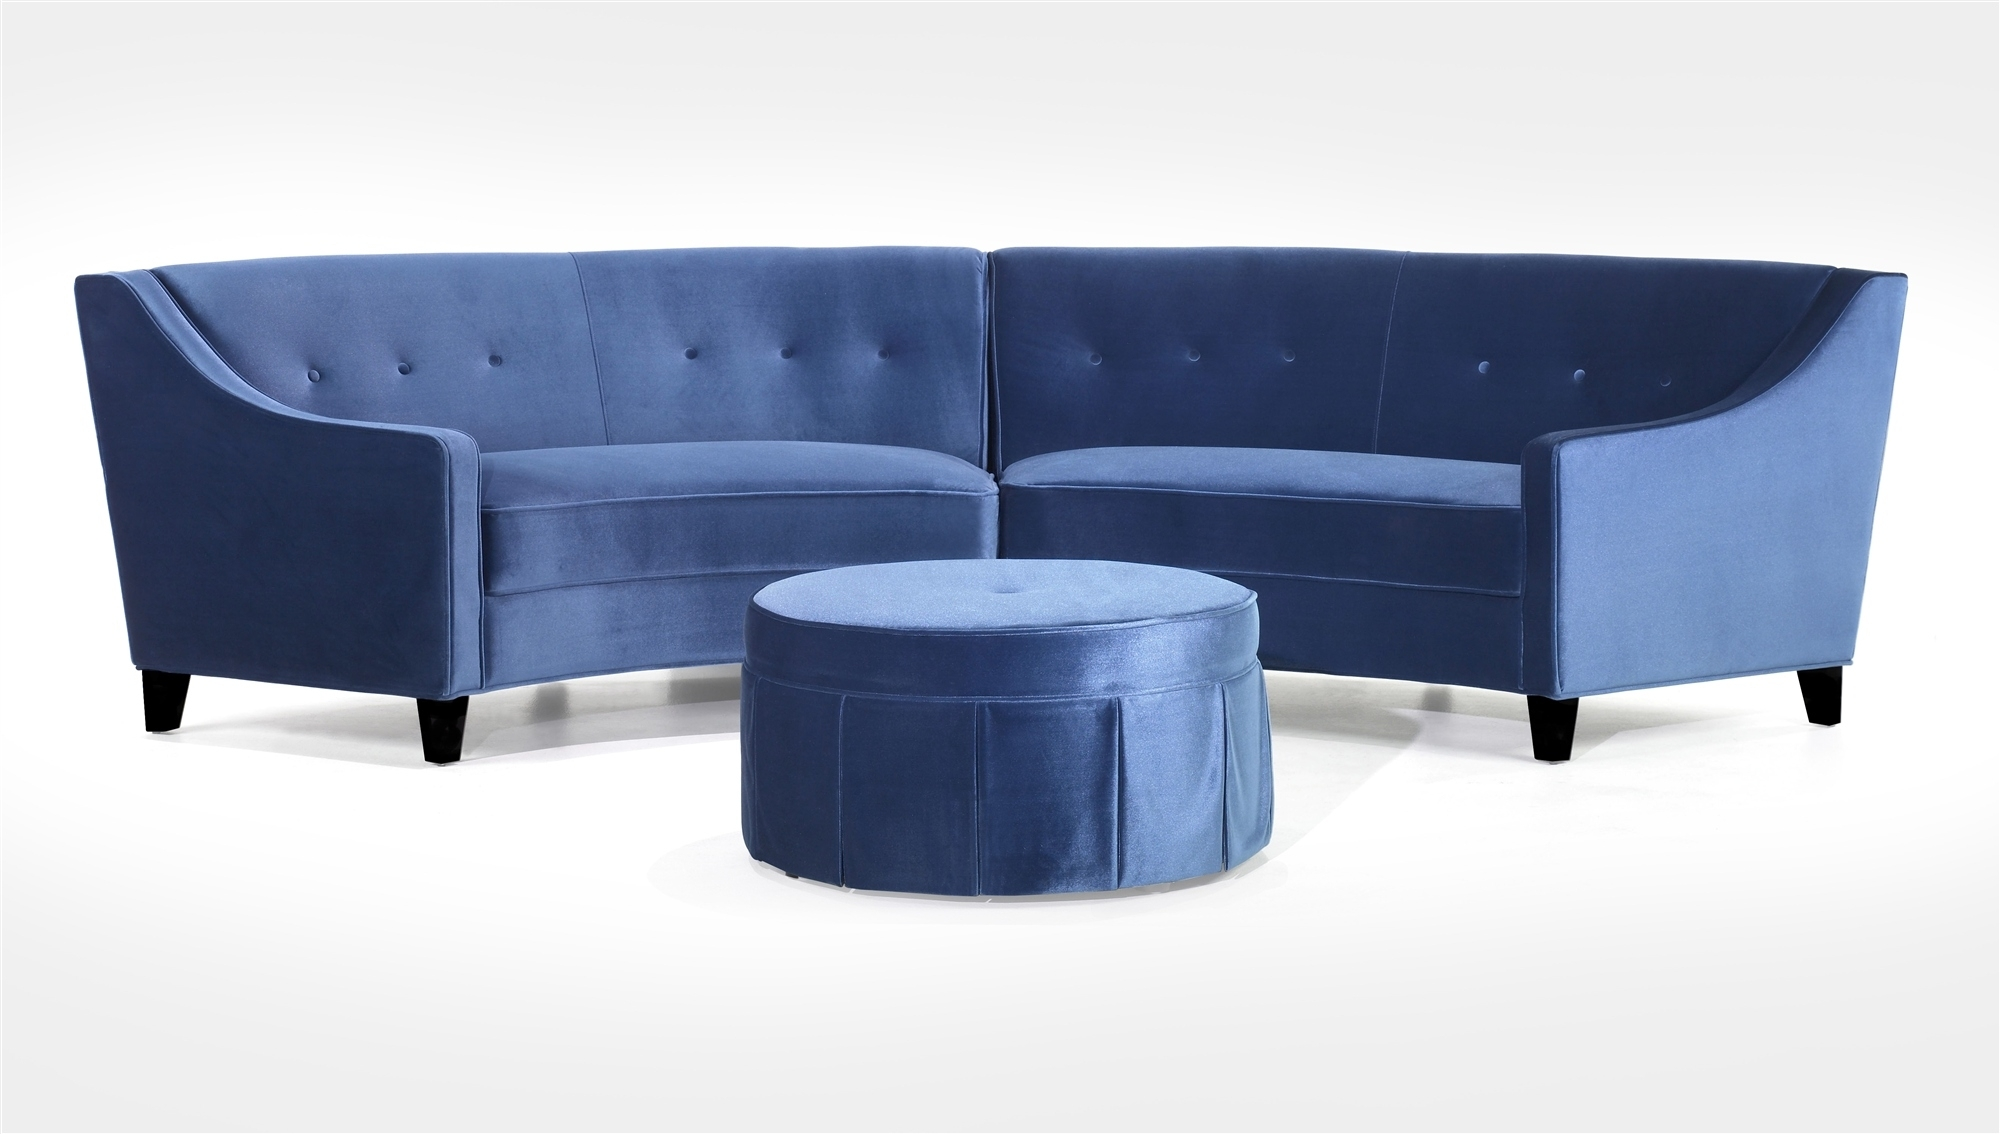 Popular Small Round Sectional Sofa 49 In Sleek Sectional Sofas With with regard to Sleek Sectional Sofas (Image 8 of 10)